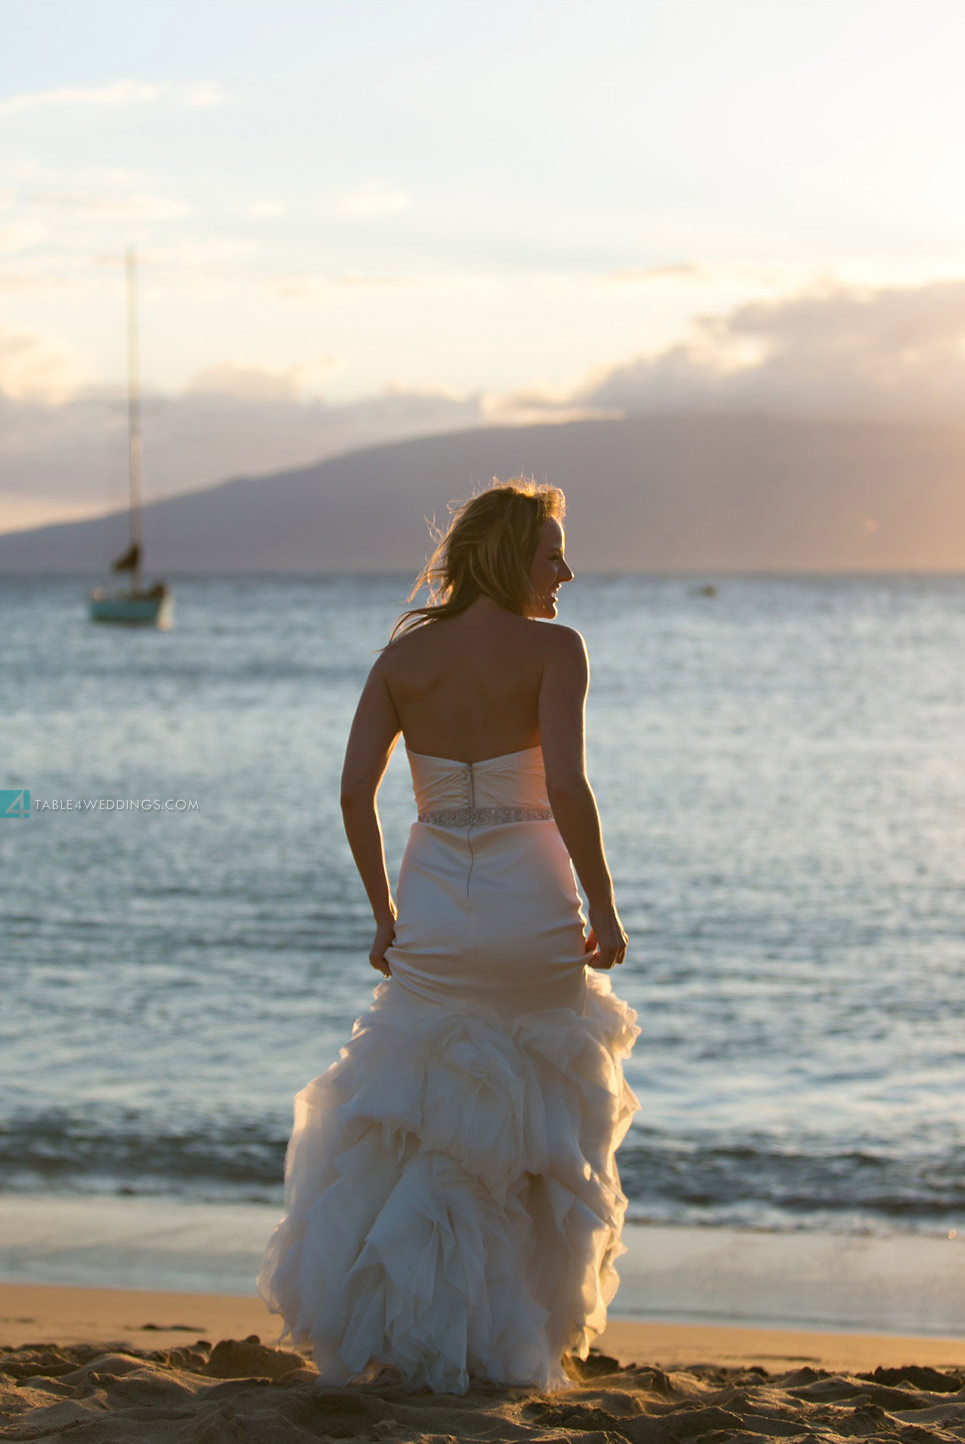 vera wang trash the dress, maui beach wedding shoot, maui wedding photography